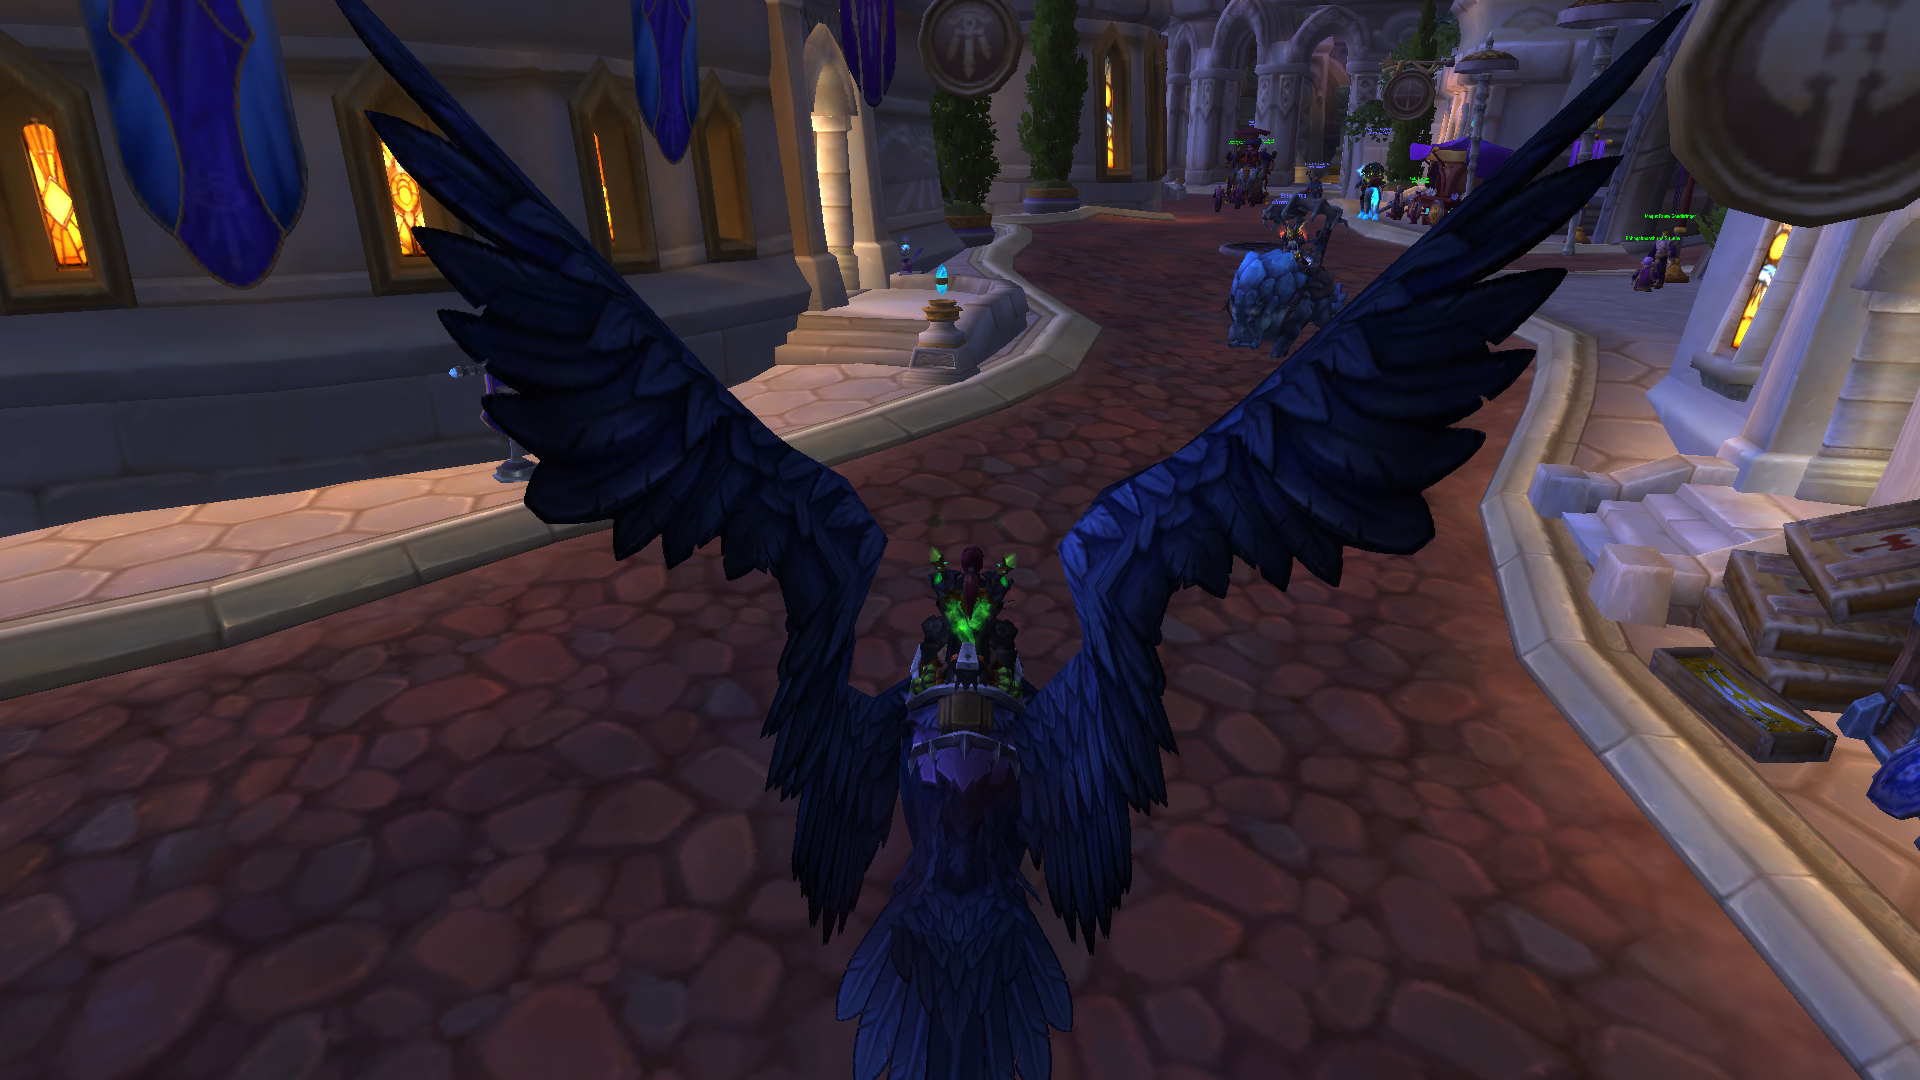 Both getting the class mount and completing the mage tower / Submitted by Shadowss